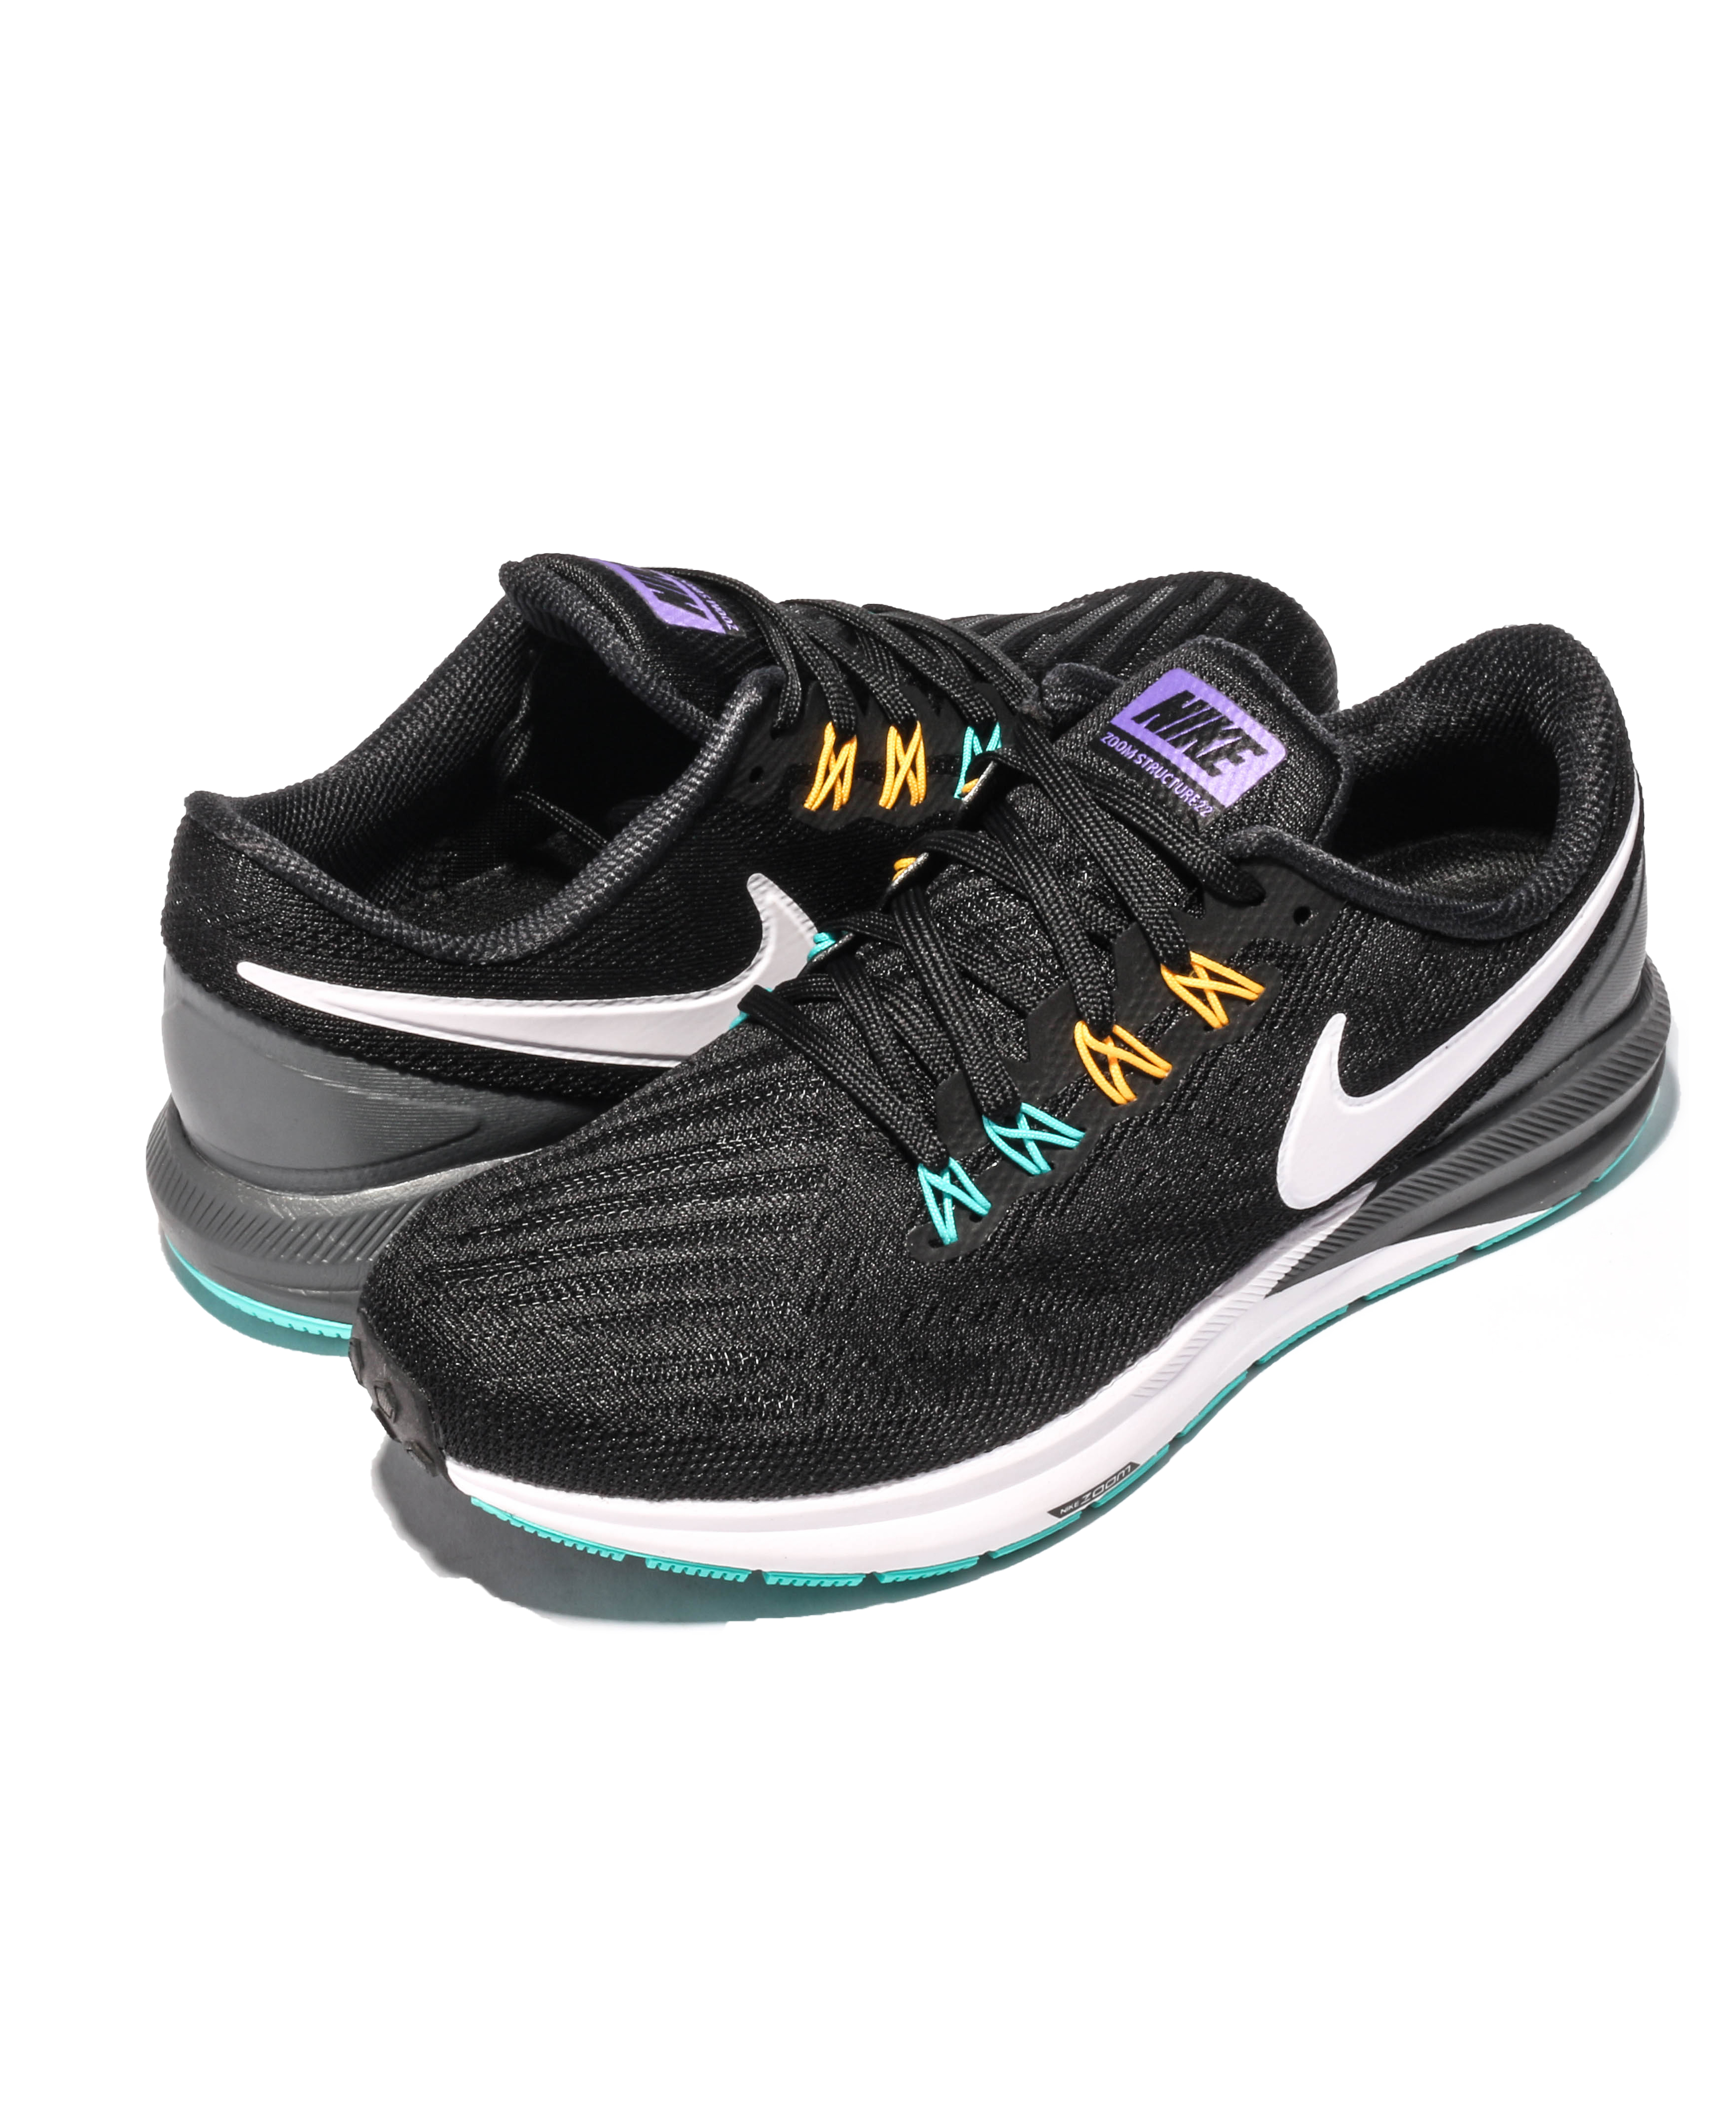 Nike Air Zoom Structure 22 Black Yellow Jade Shoes